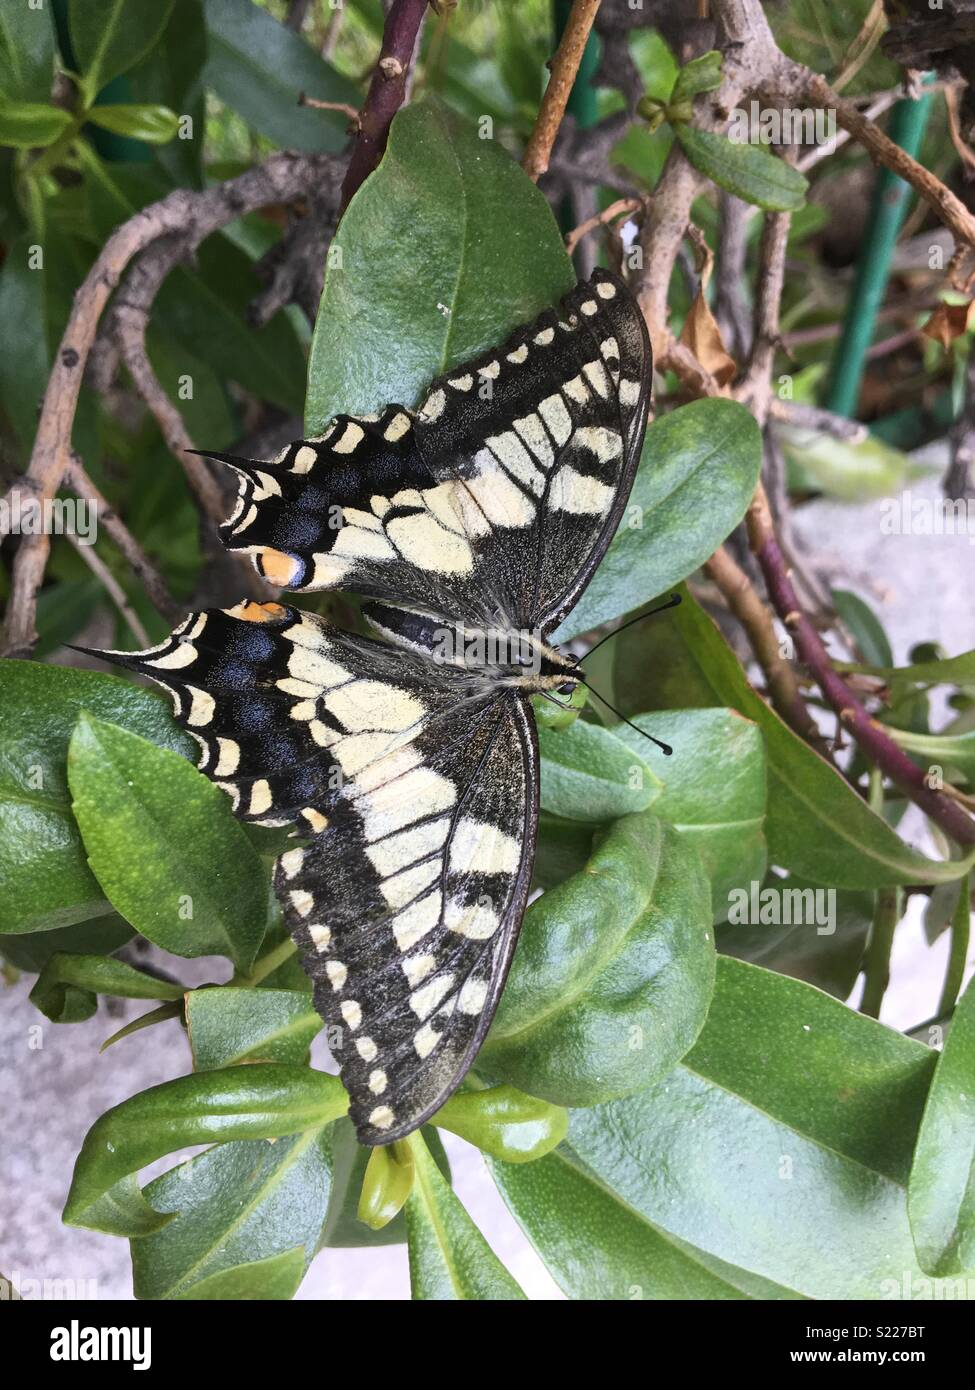 Butterlfy in the wild #nature #calming - Stock Image